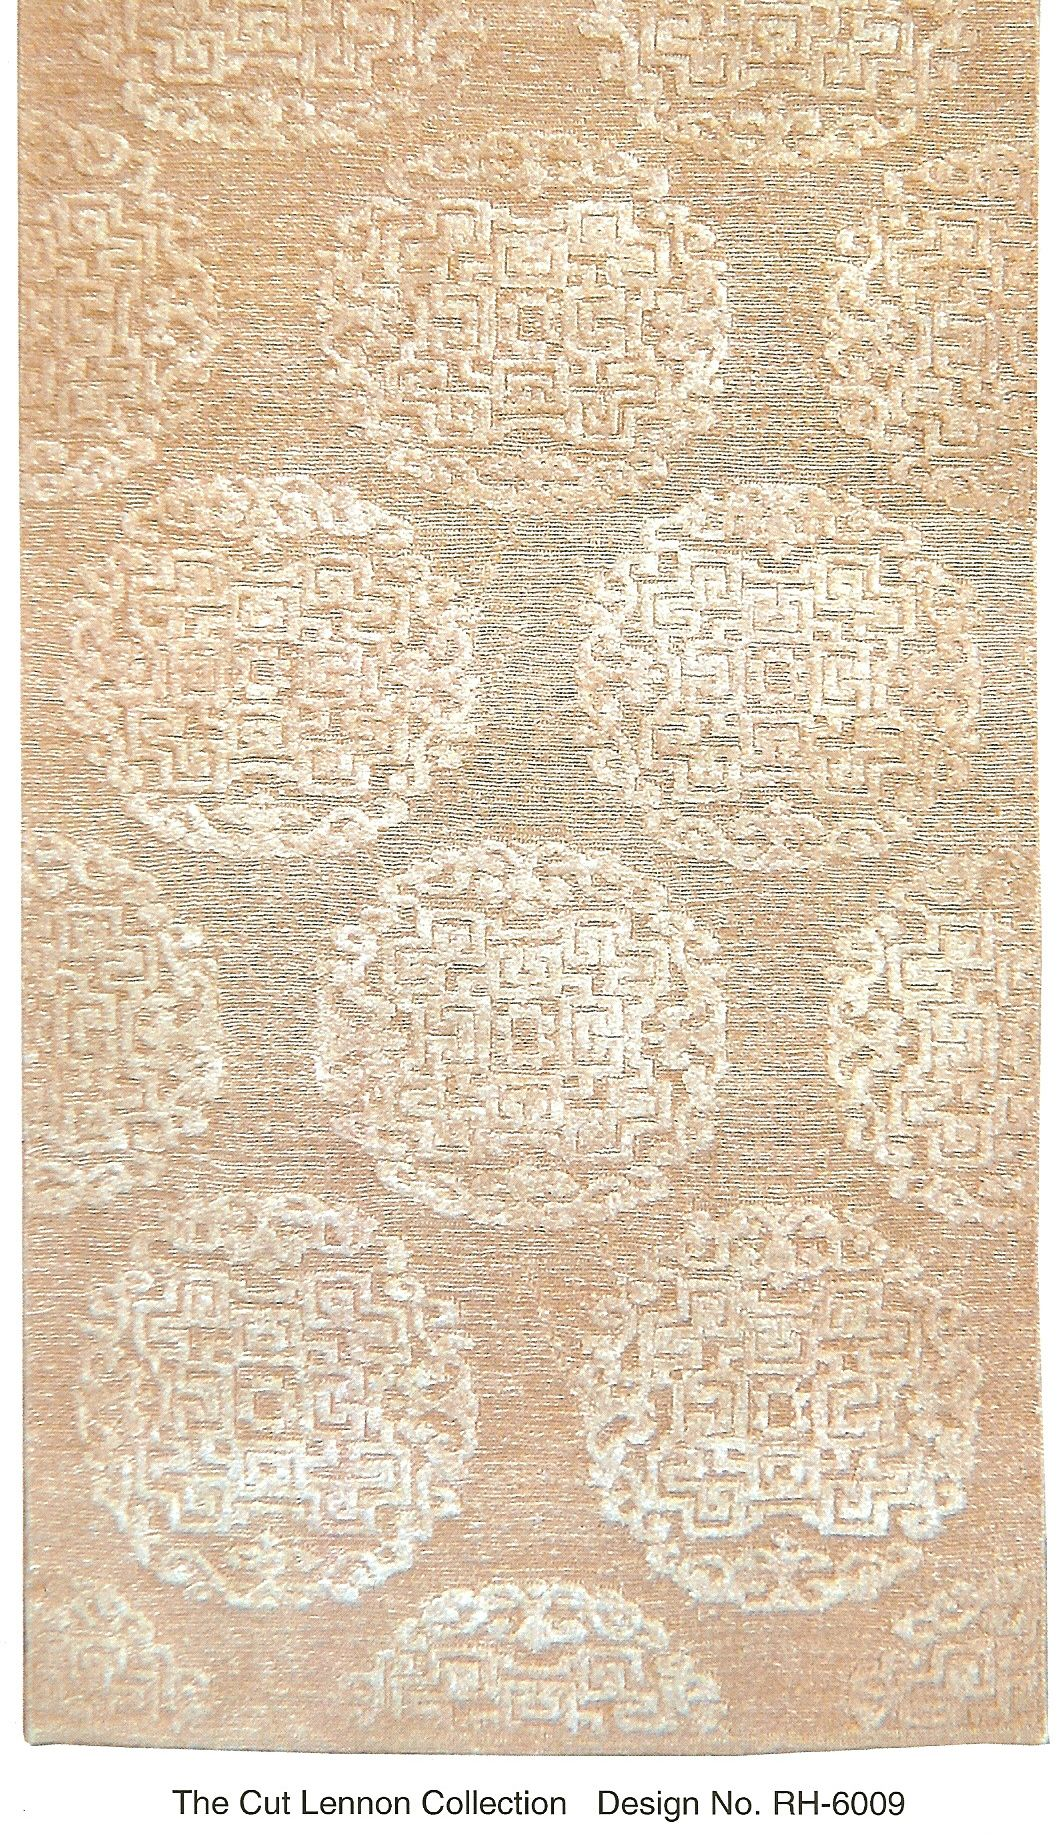 The Cut Lennon Collection By Ams Imports Hand Woven In India These Gorgeous Designs Combines Both Flat Sumac Pile Carpet Weaving Techniques